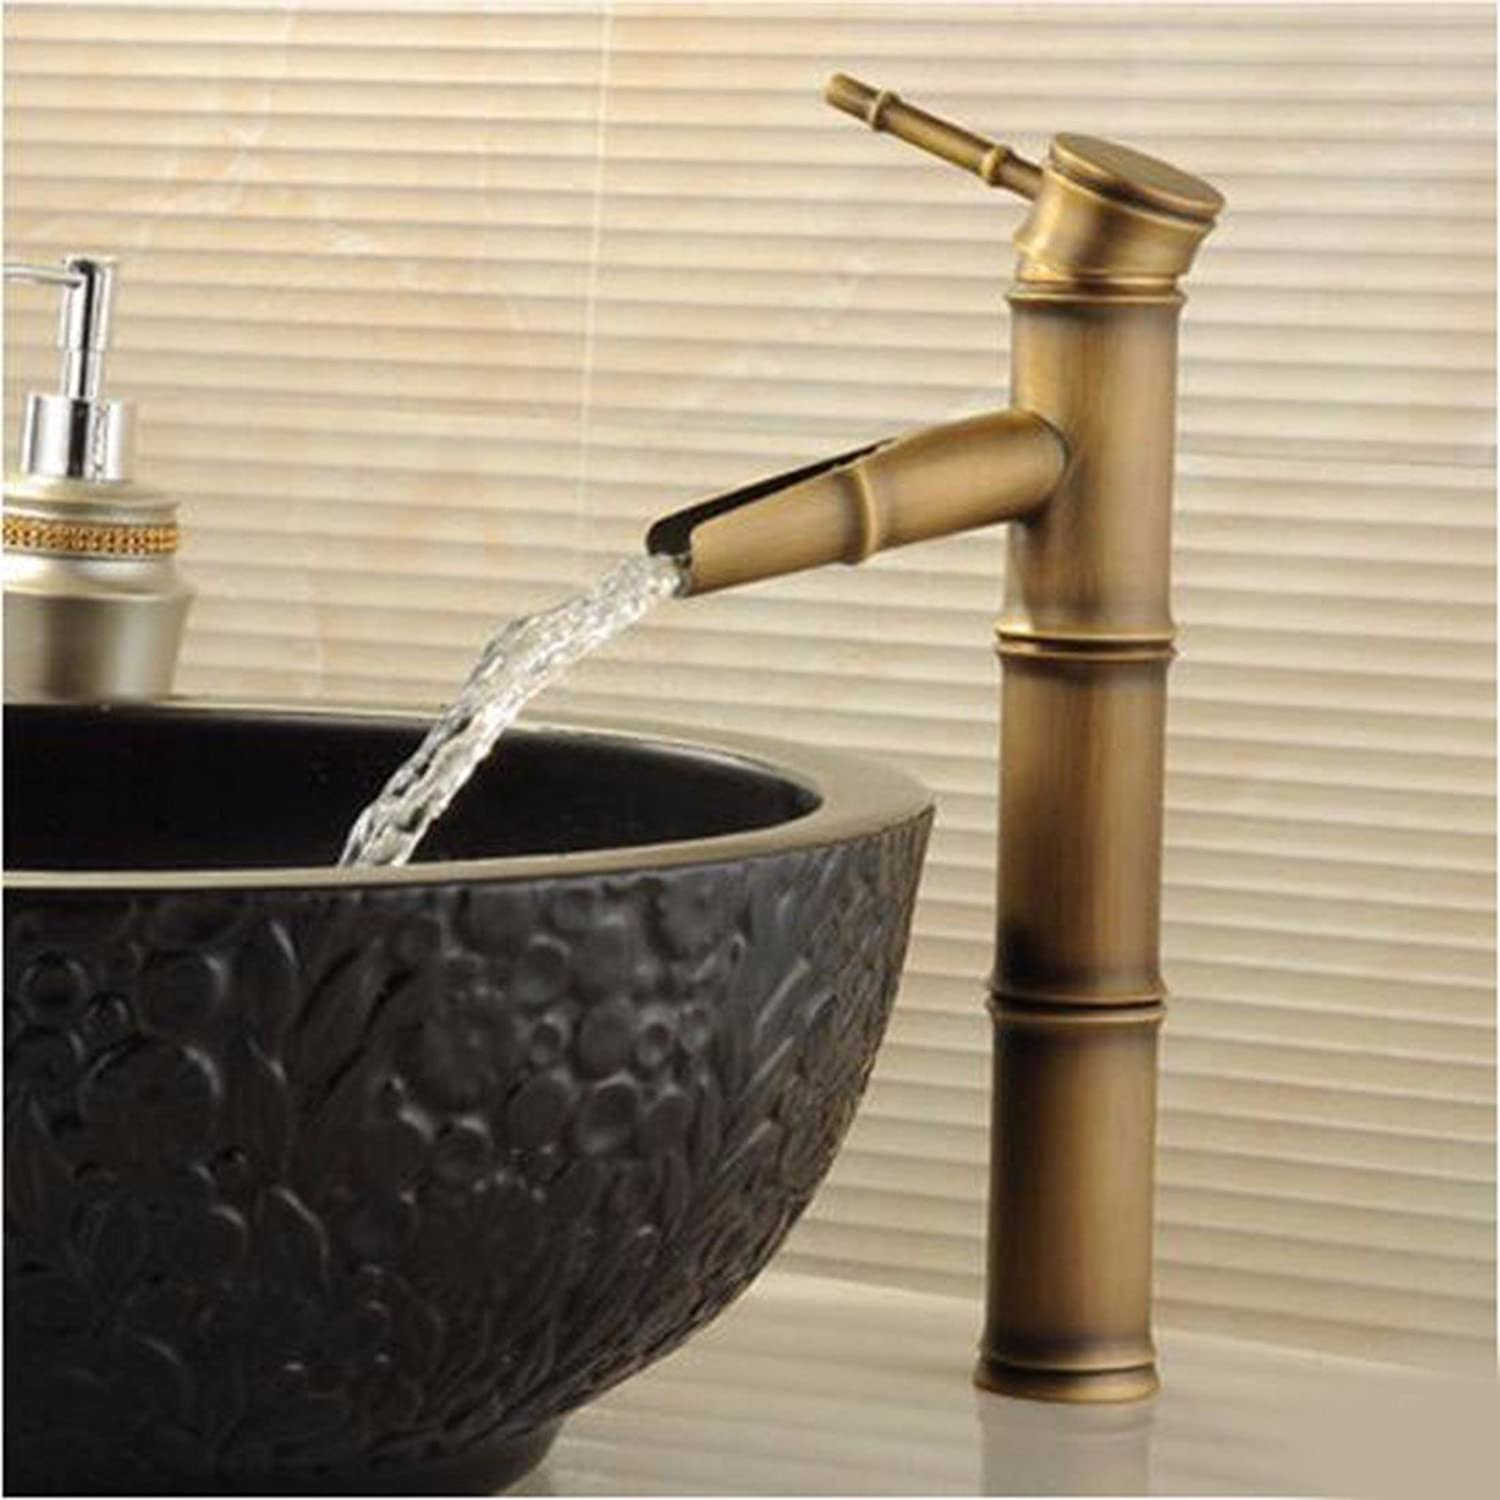 Hlluya Professional Sink Mixer Tap Kitchen Faucet Antique Faucet Washbasin Faucet hot and cold surface basin faucet basin basin mixer